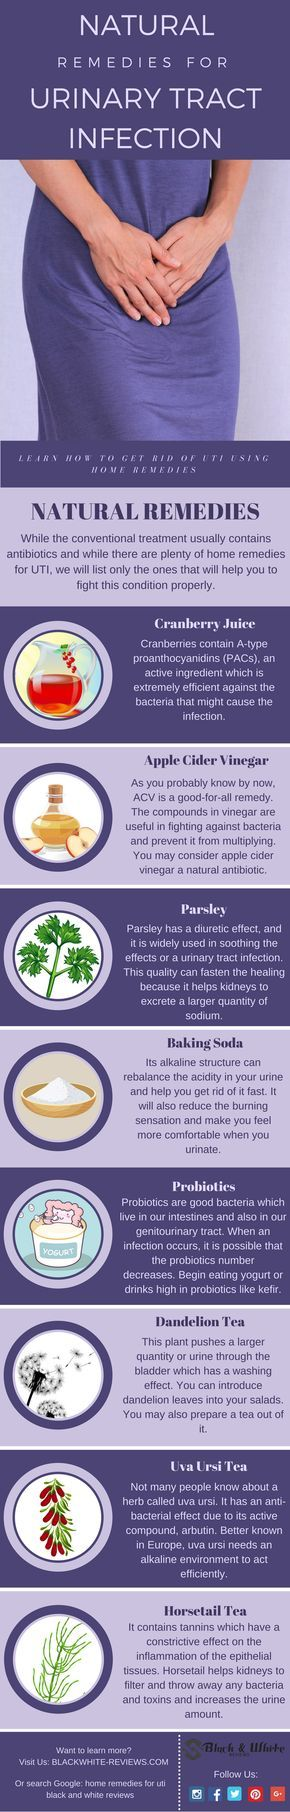 25+ best ideas about Urinary tract infection on Pinterest   Kidney ...